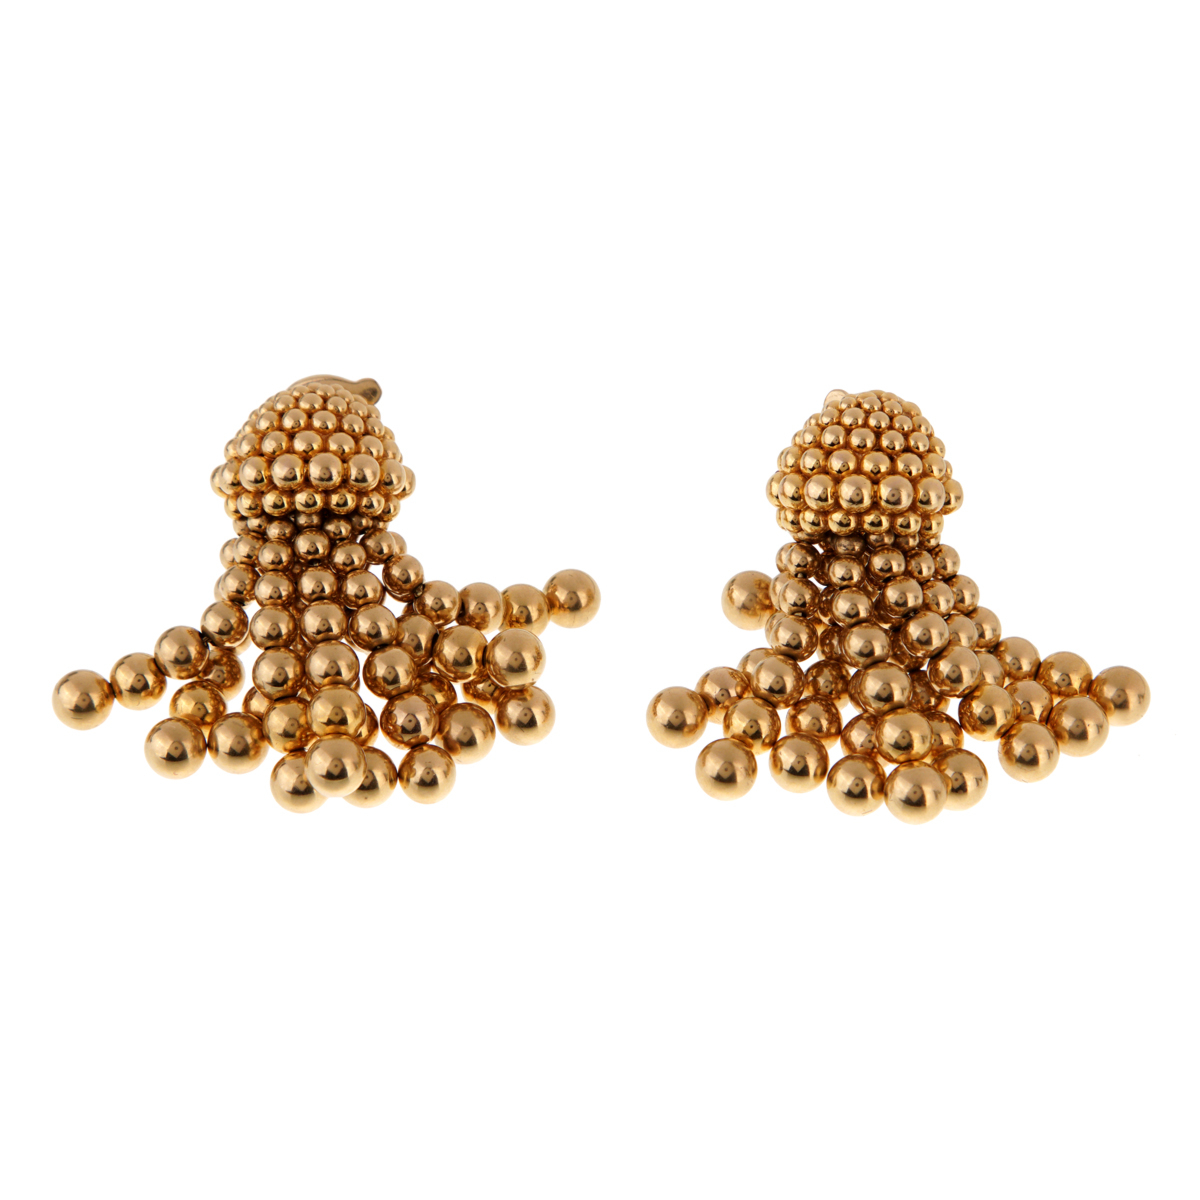 Chanel Vintage Gold Tassle Drop Earrings - Chanel Jewelry